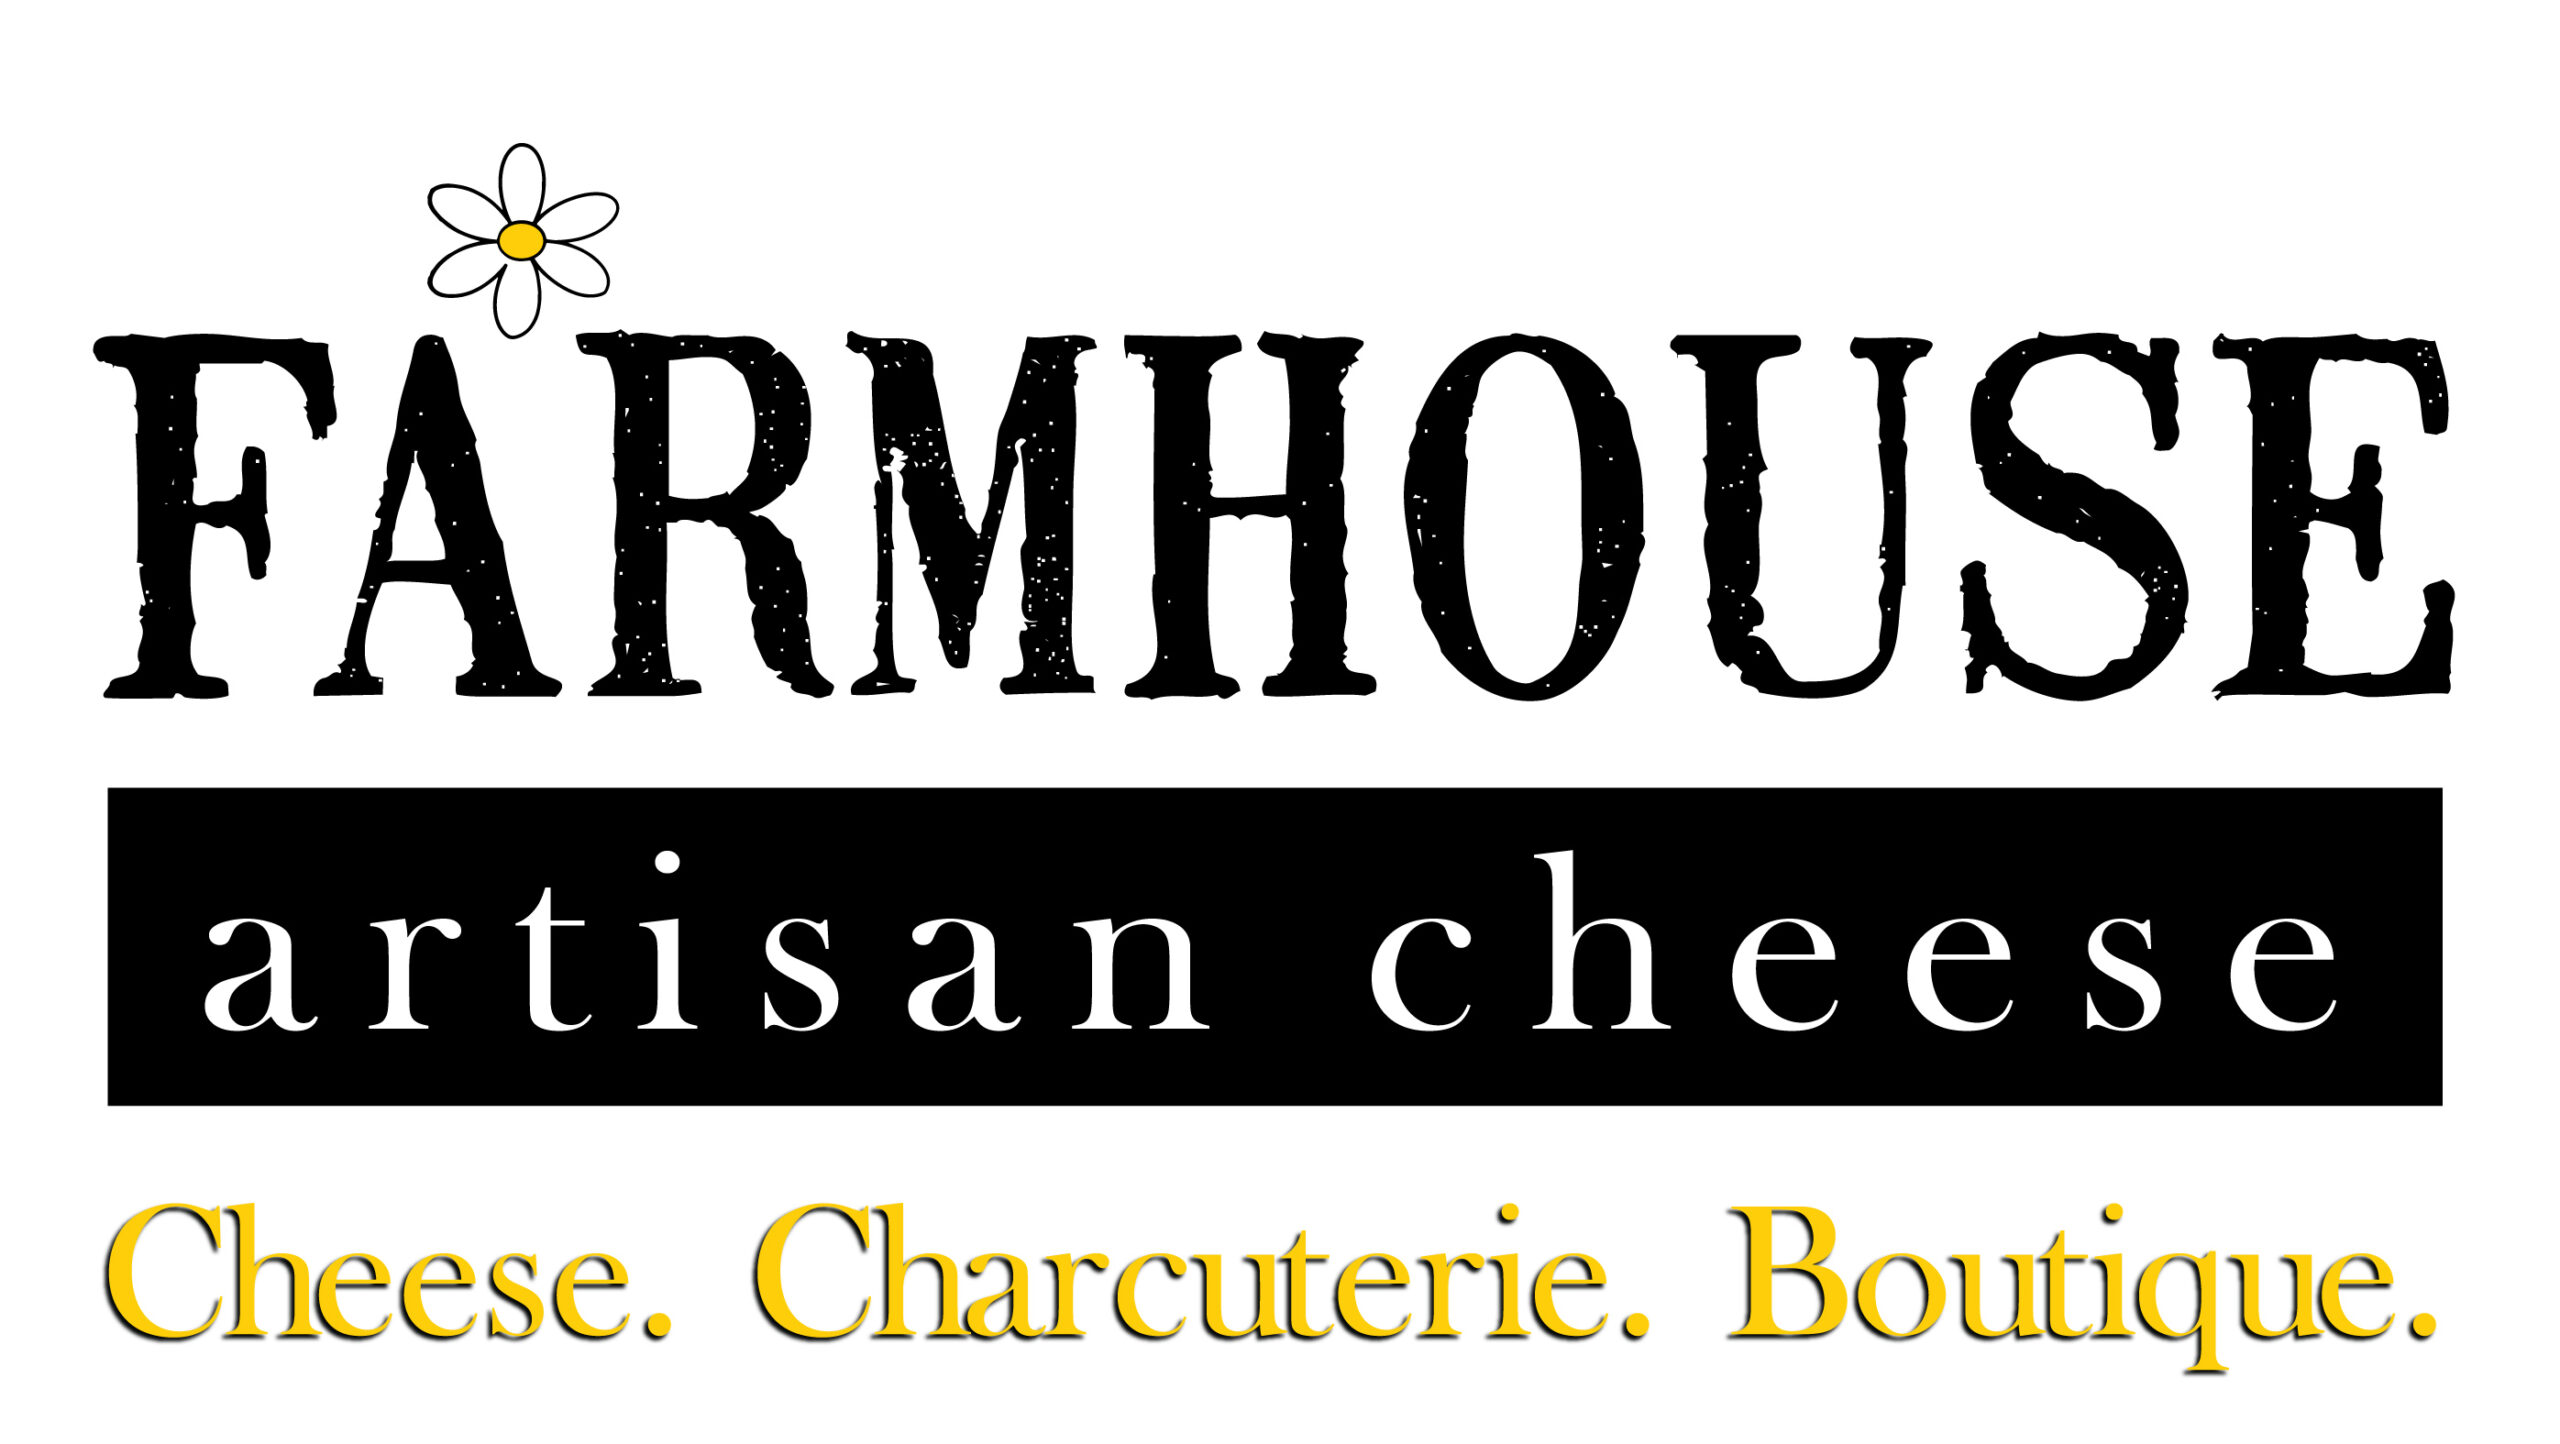 Farmhouse Artisian Cheese